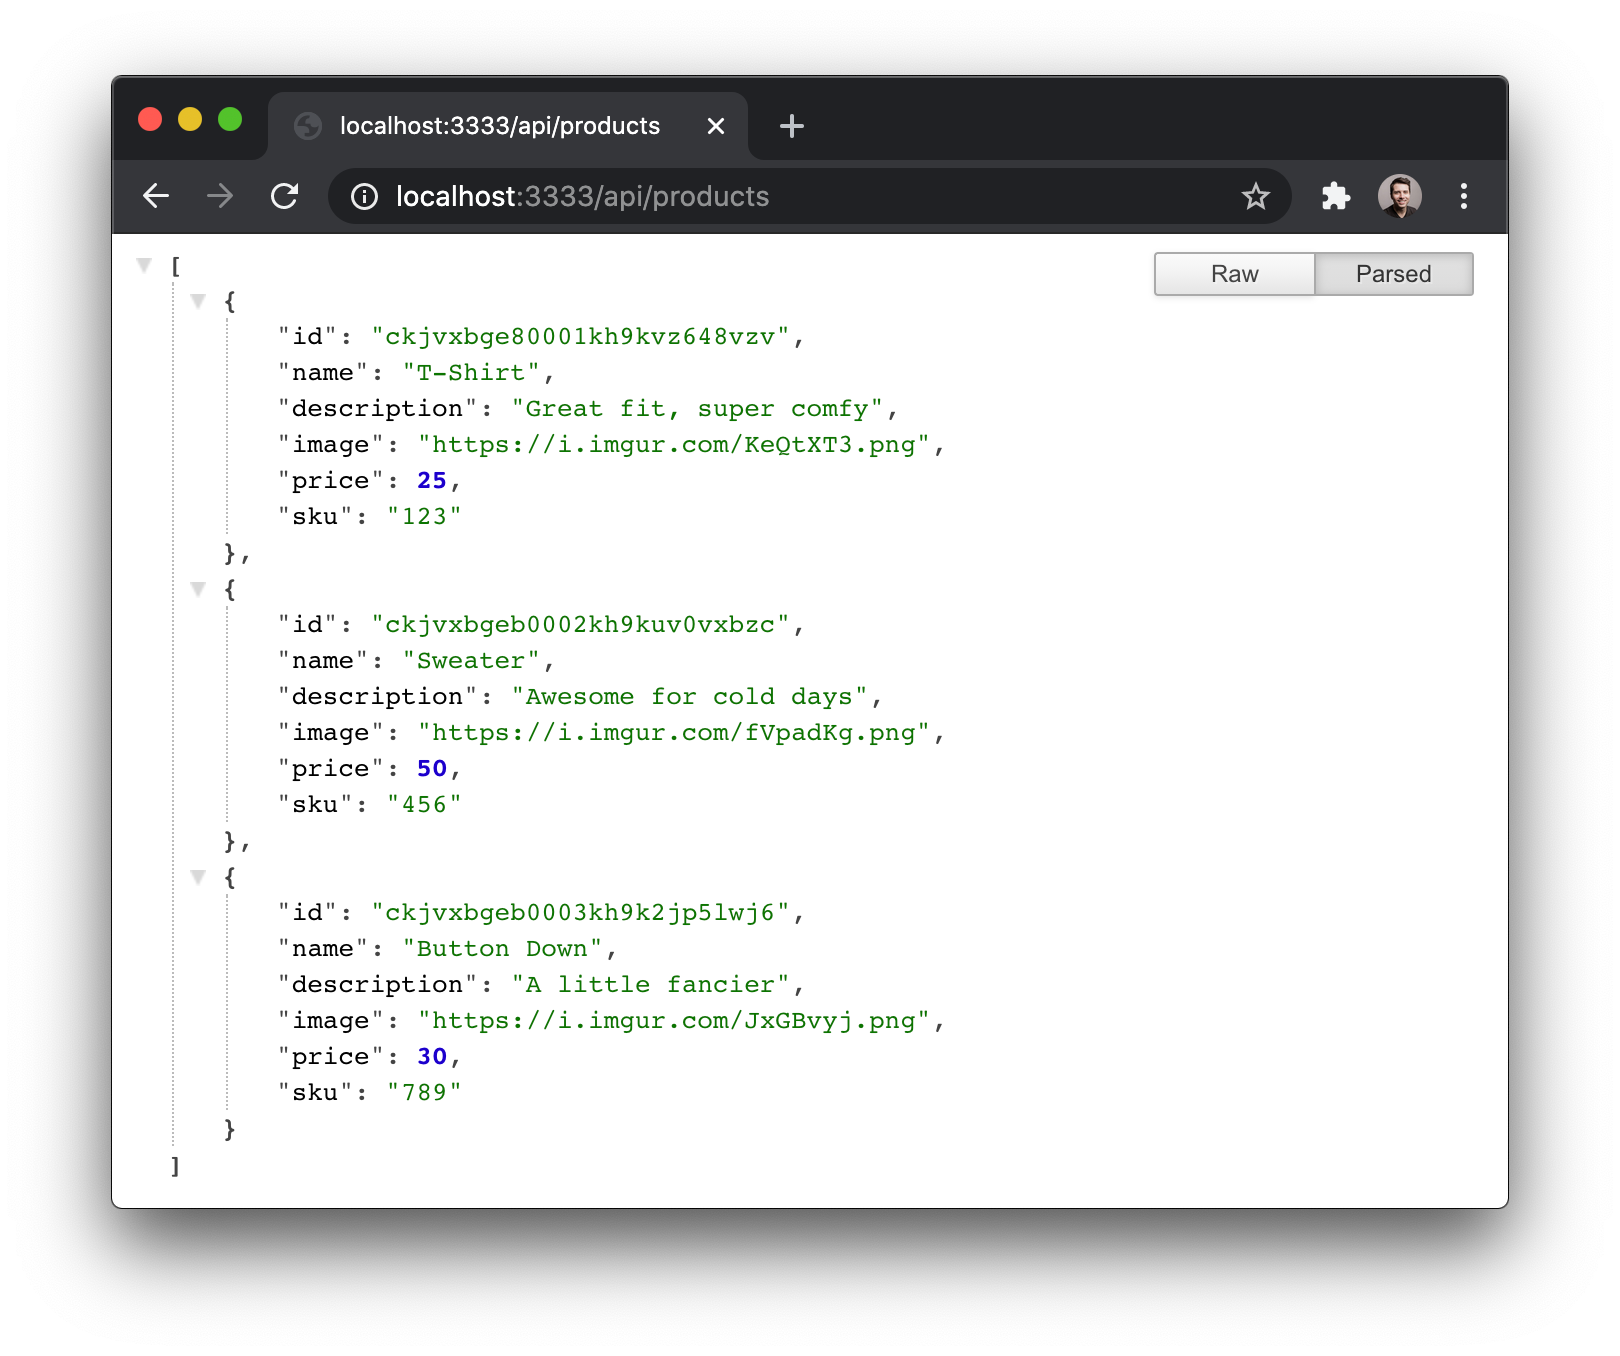 Products data from the API